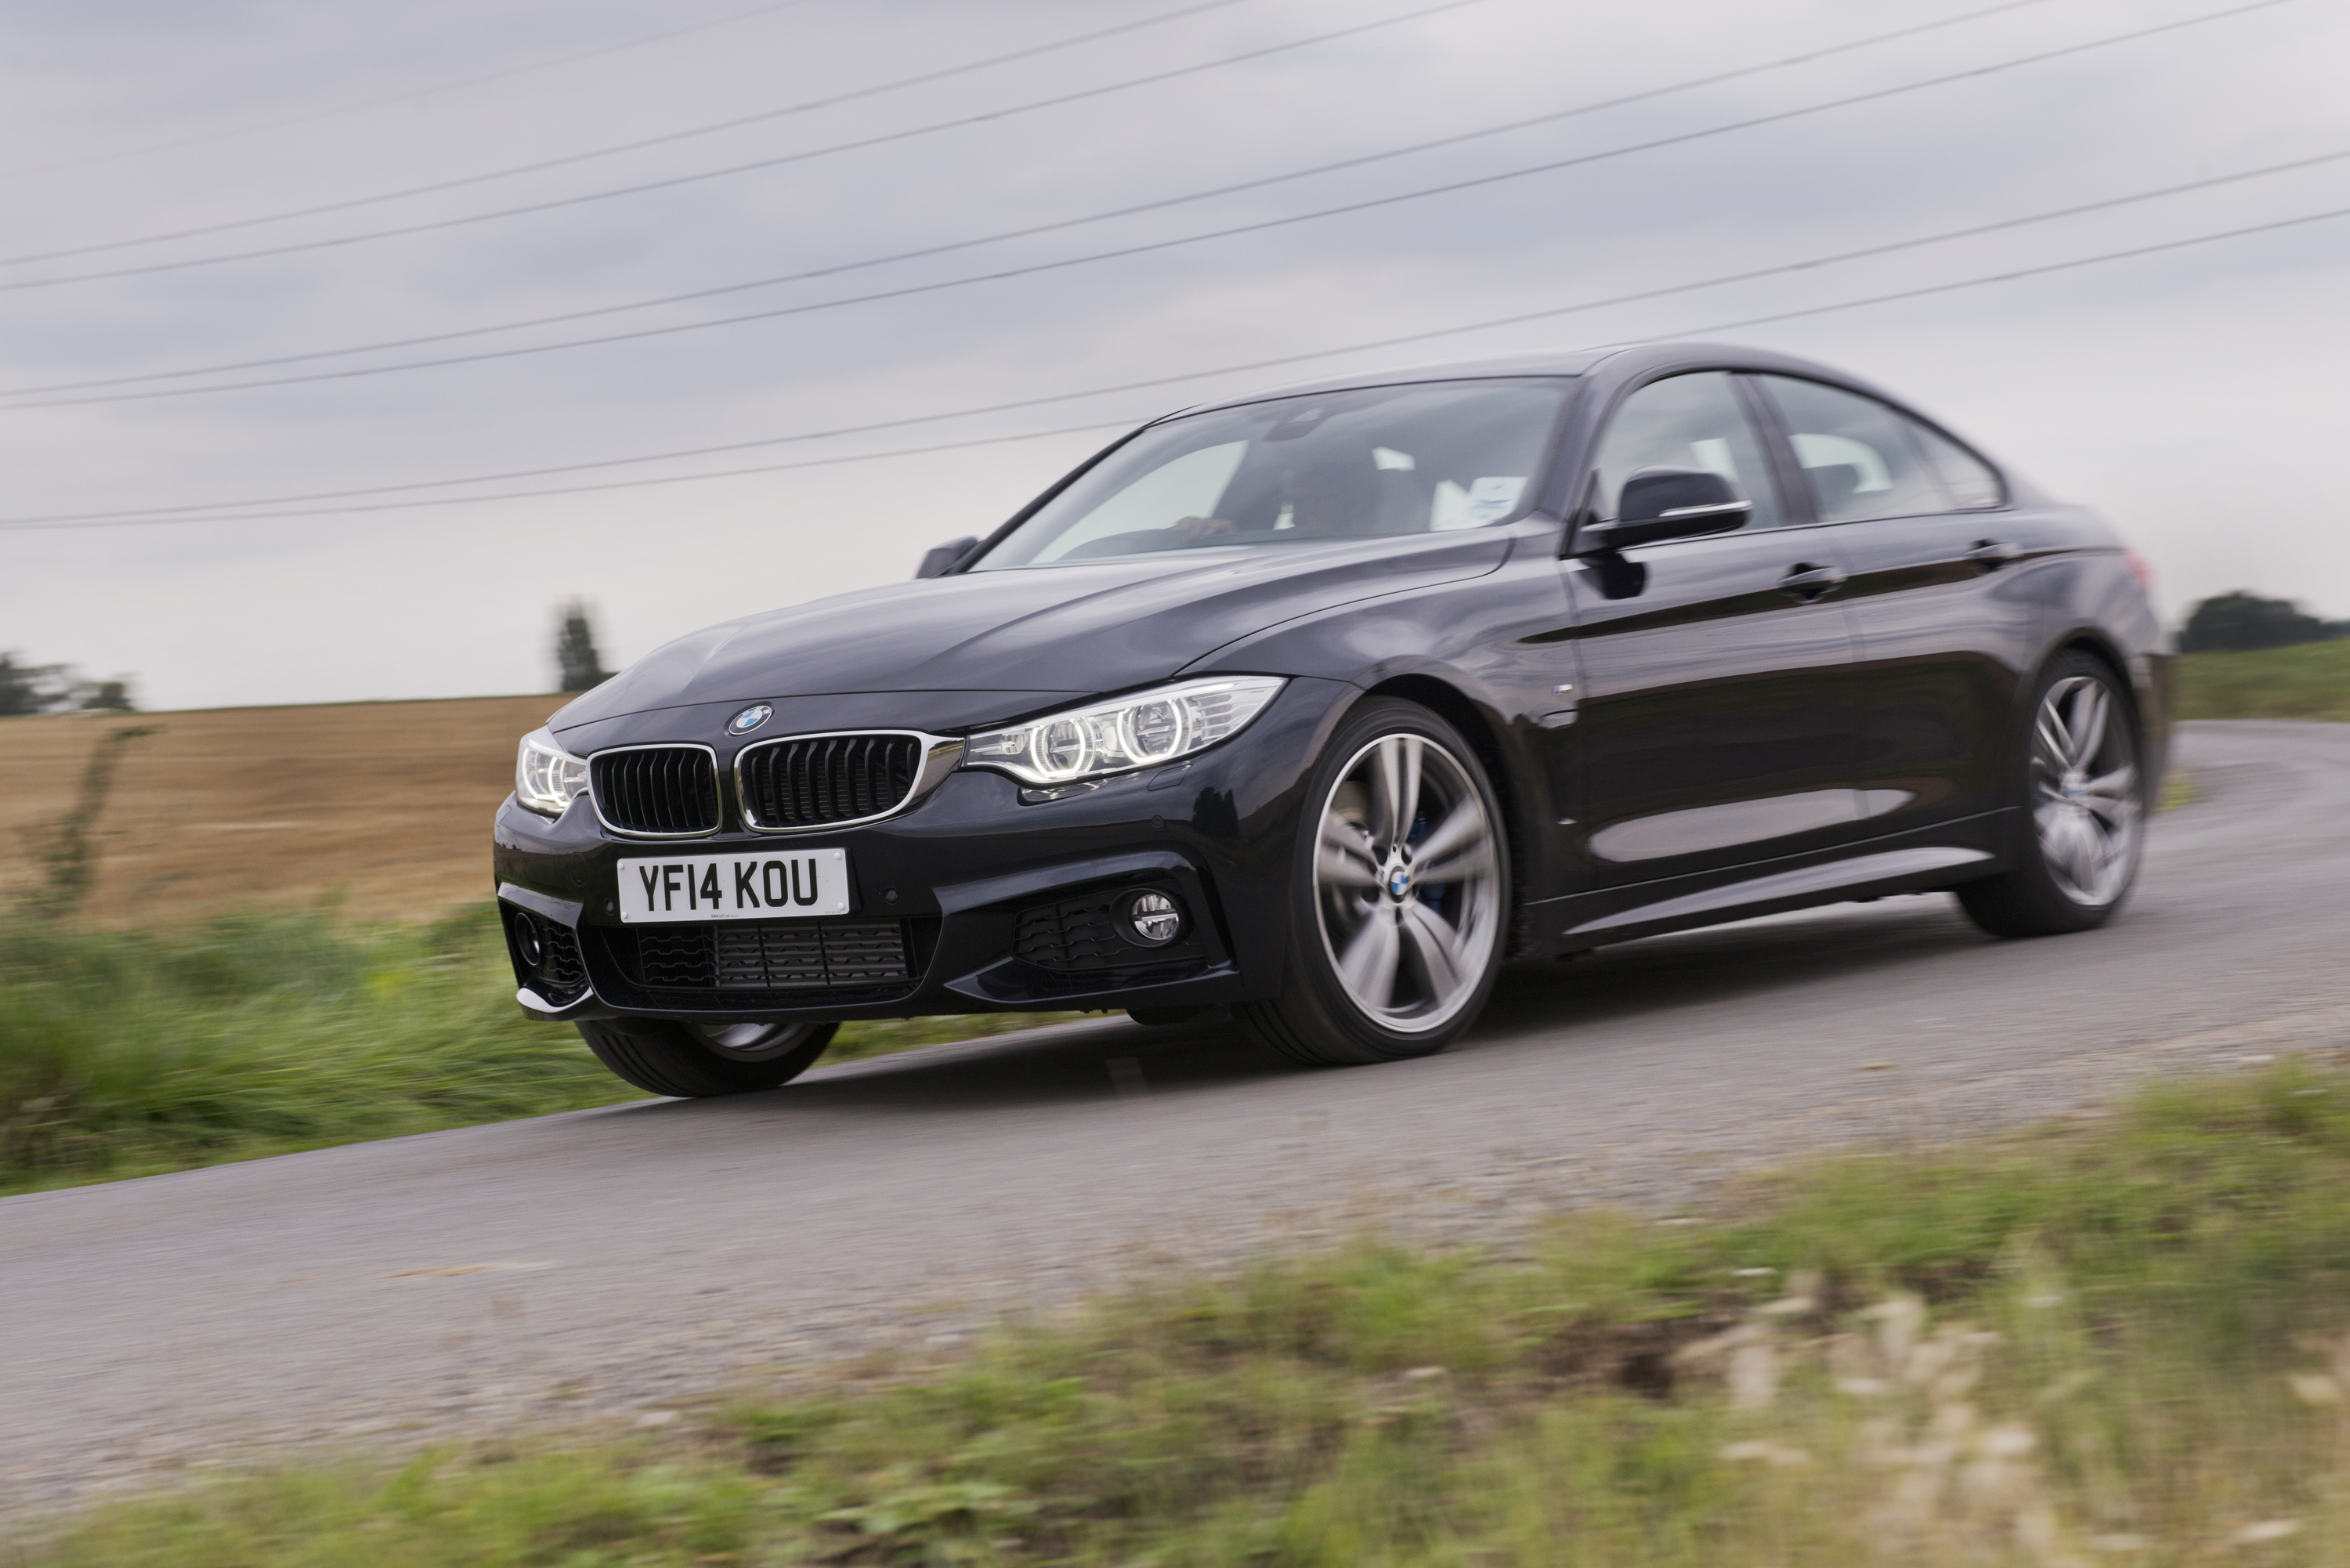 Bmw 4 Series Gran Coupe Review Price Specs And 0 60 Time Evo